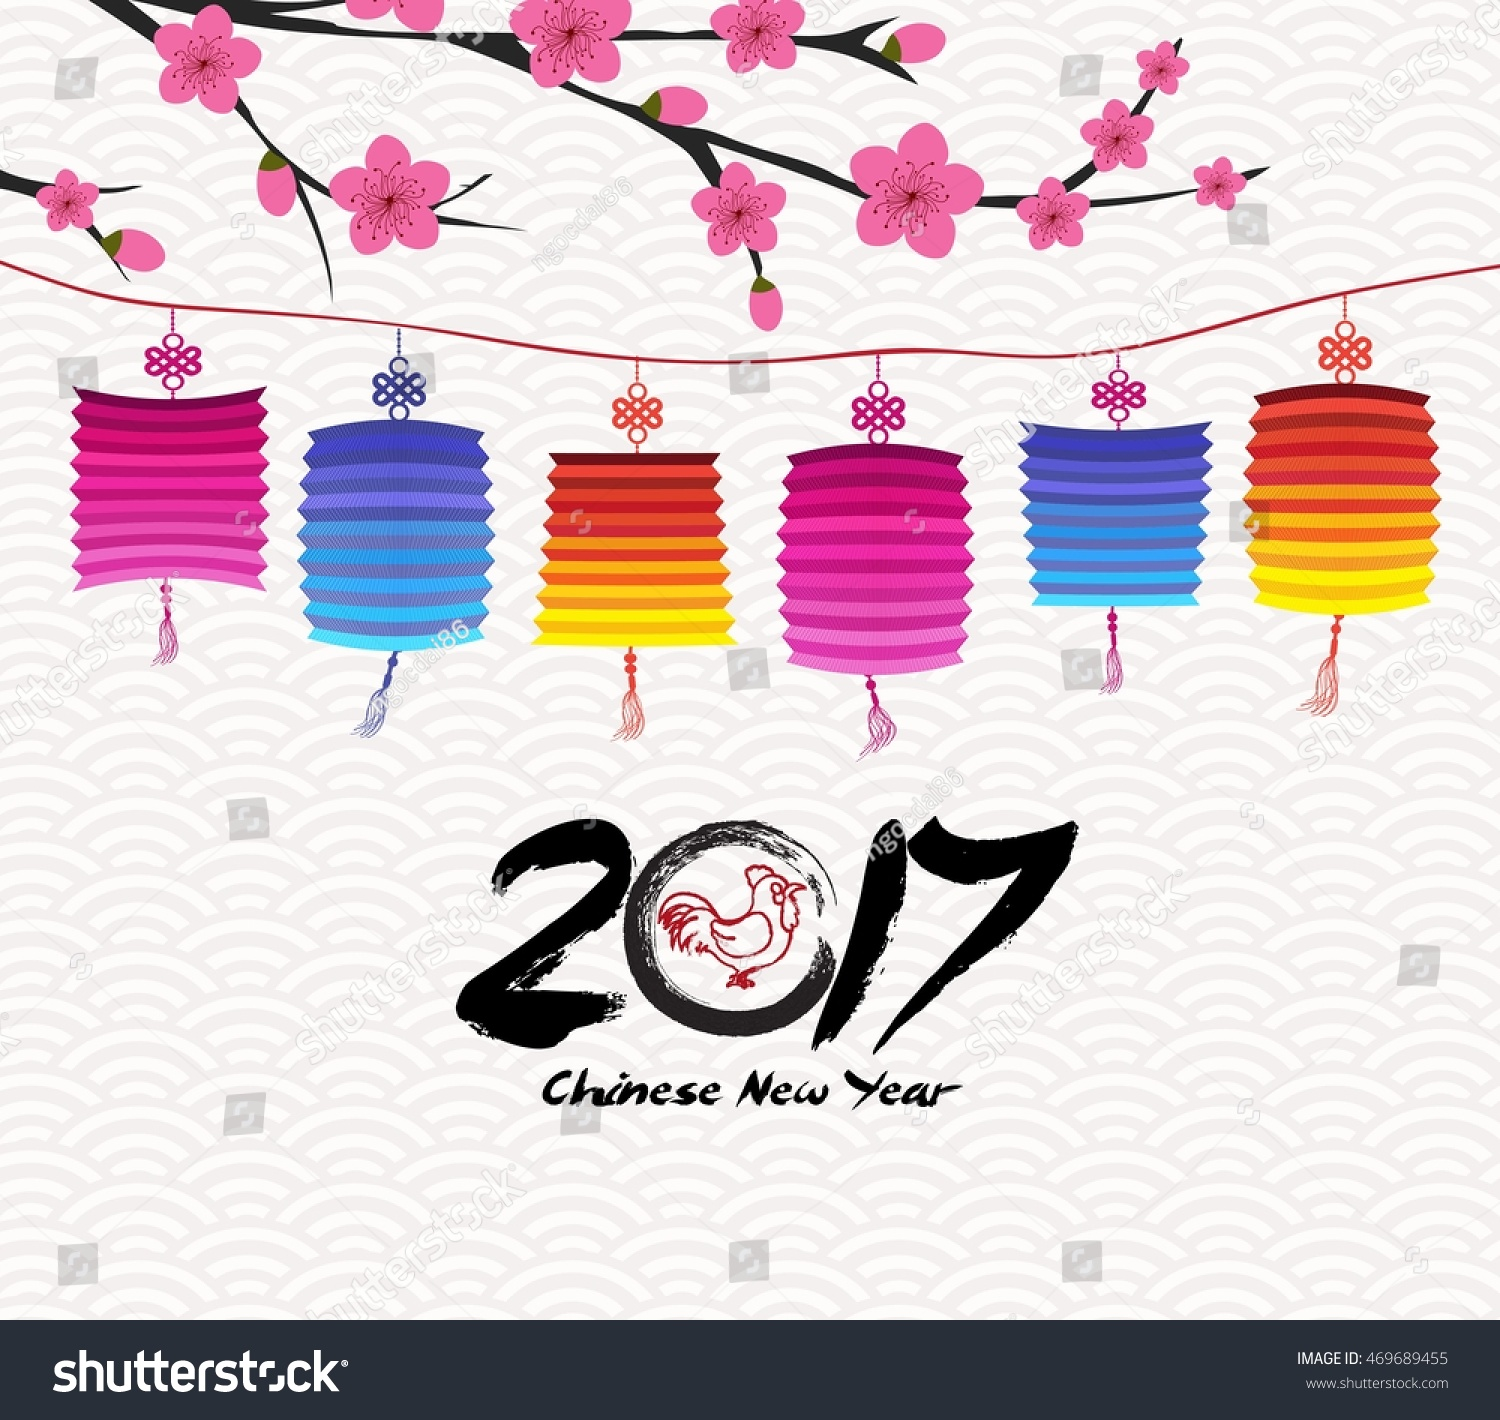 blossom chinese new year lantern and background